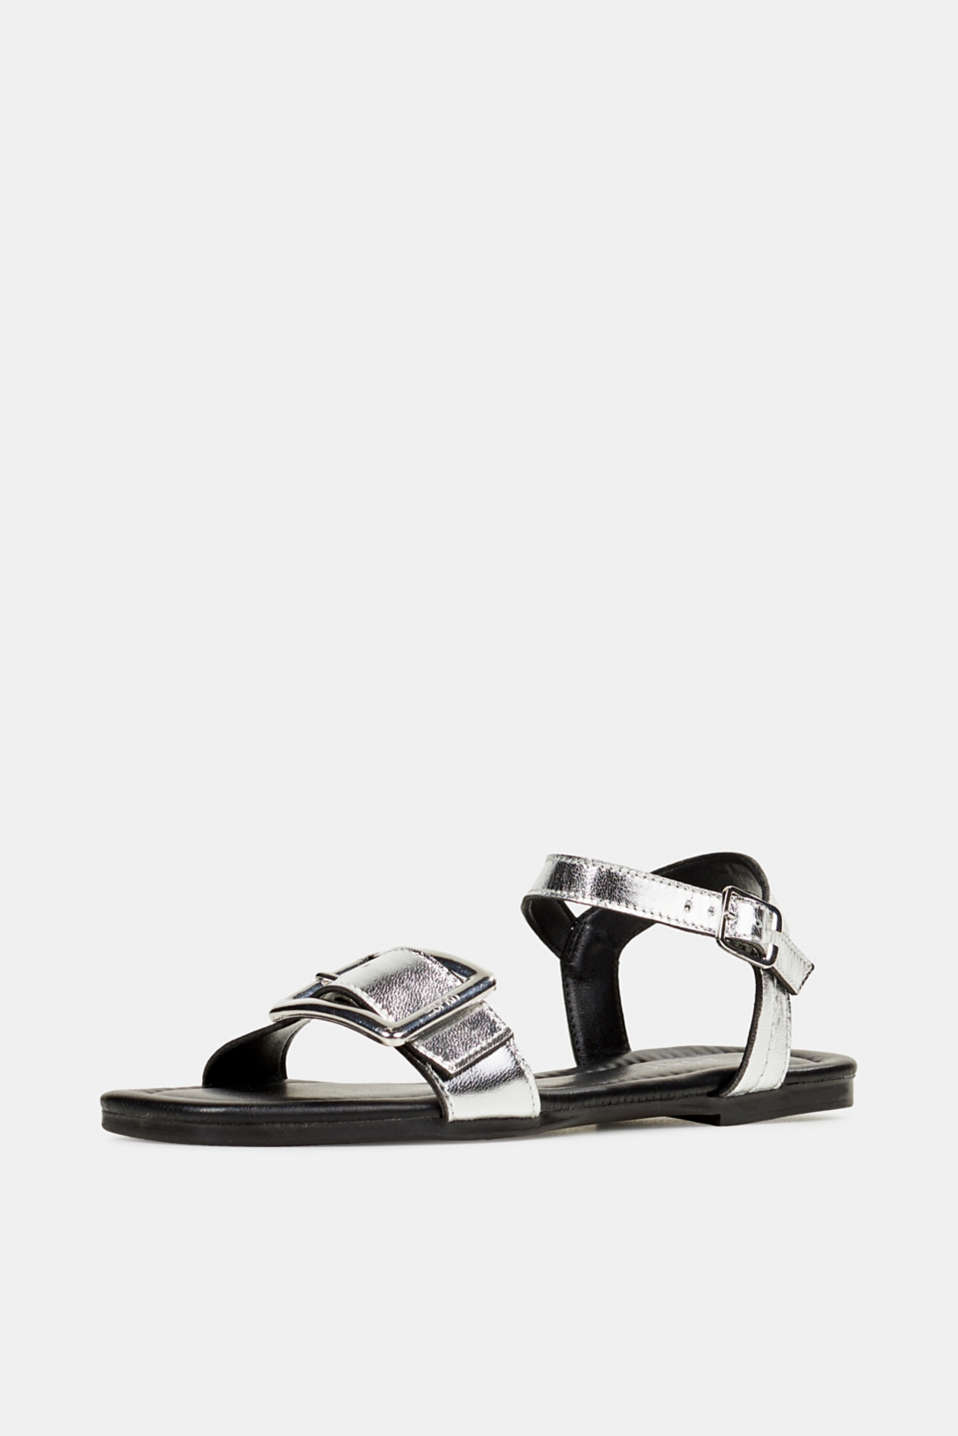 Leather sandals with buckles, SILVER, detail image number 2